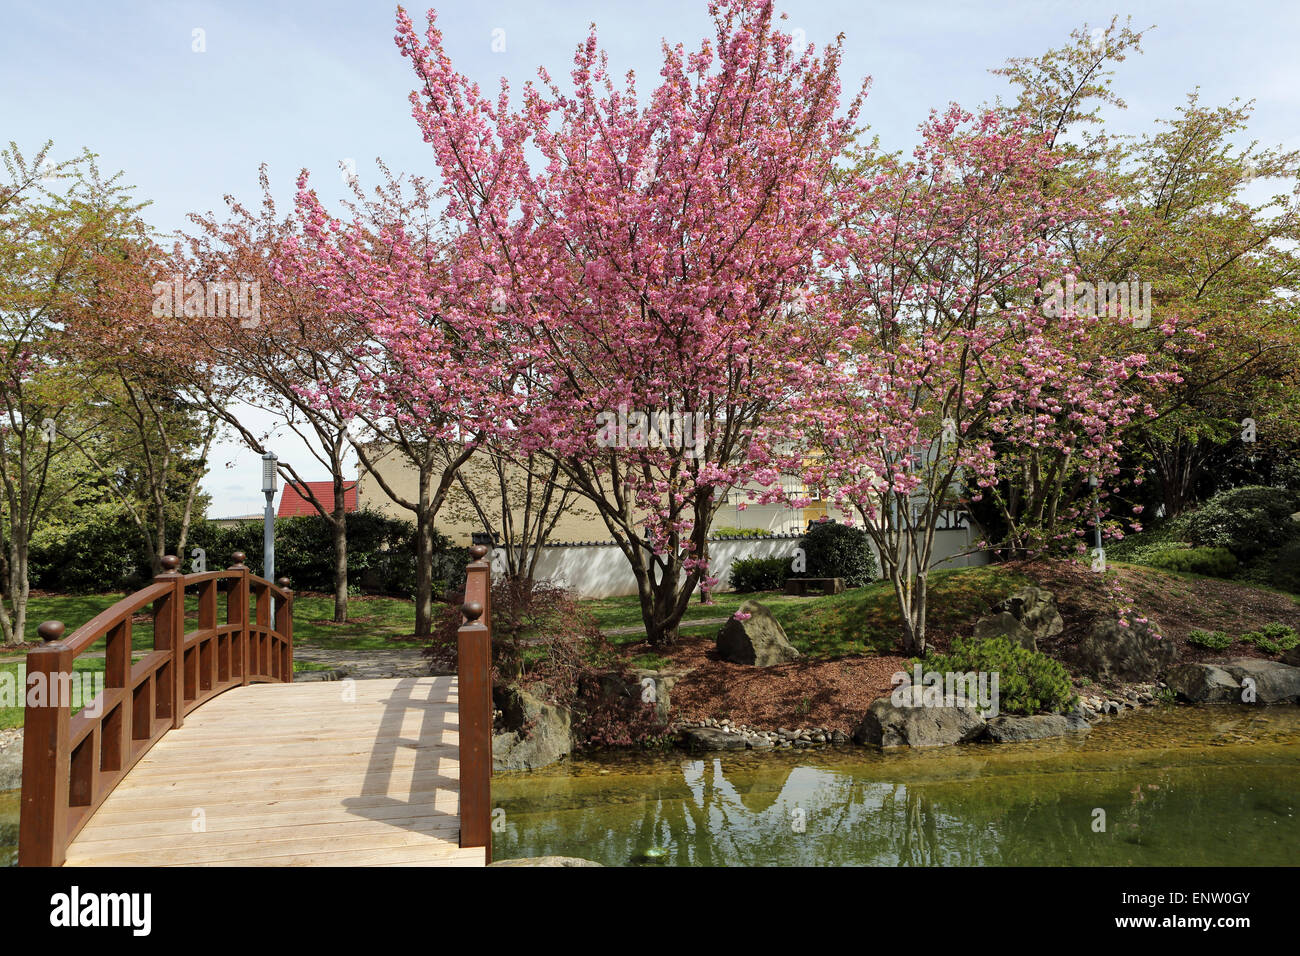 blossoming cherry trees and a traditional bridge in the japanese garden japanischer garten in bad langensalza germany